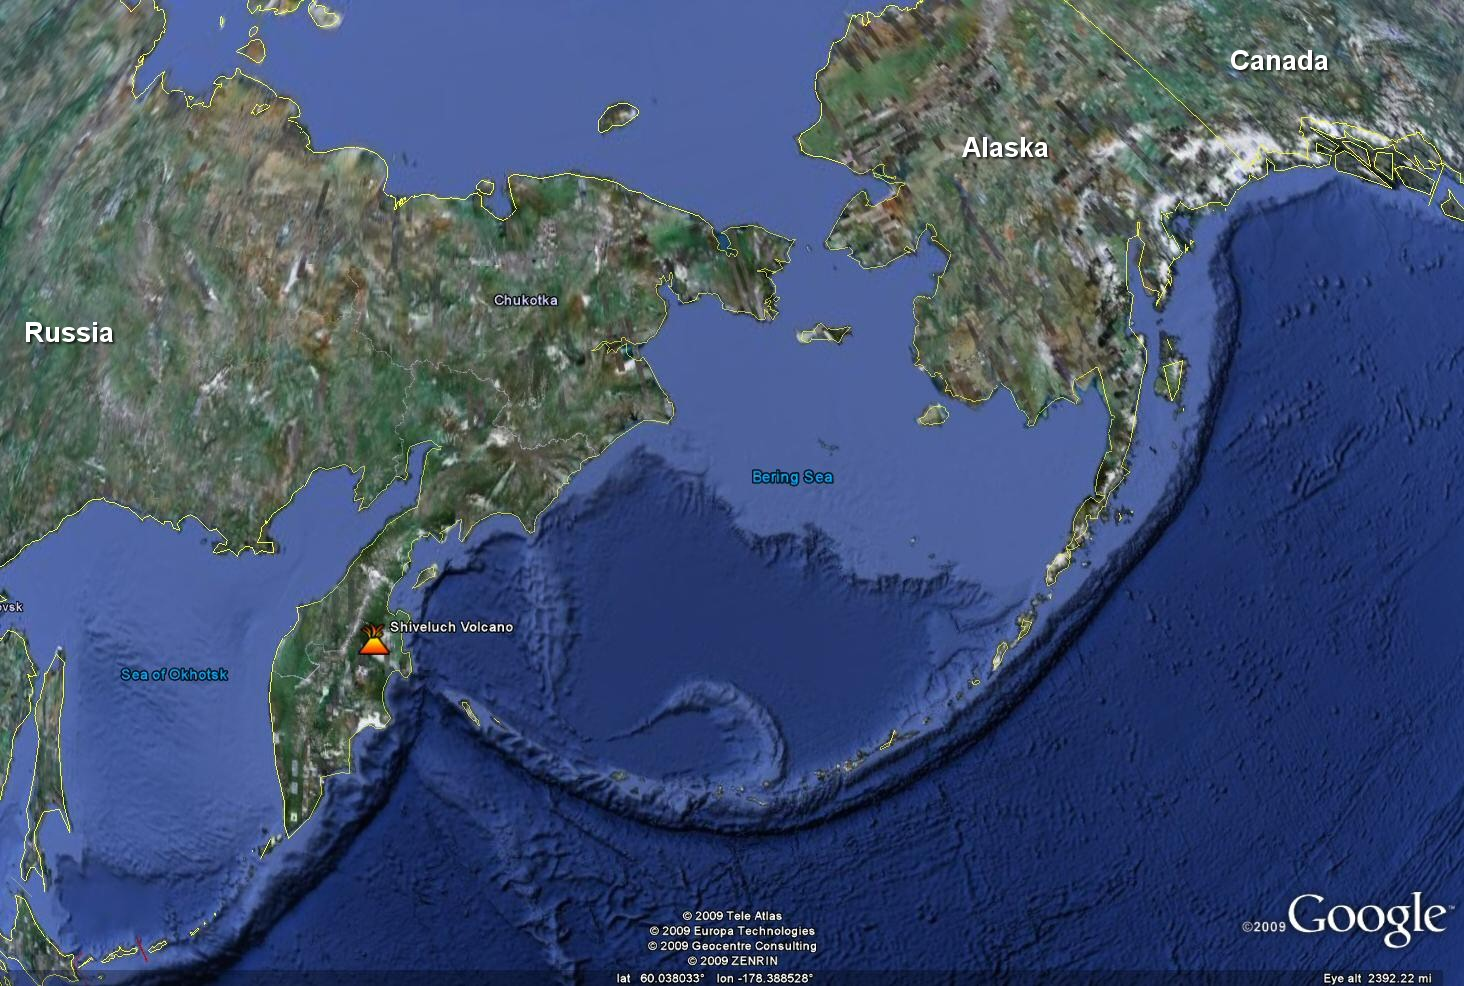 nuclear craters in russiahtml in nowywyvebolgithubcom source code search engine